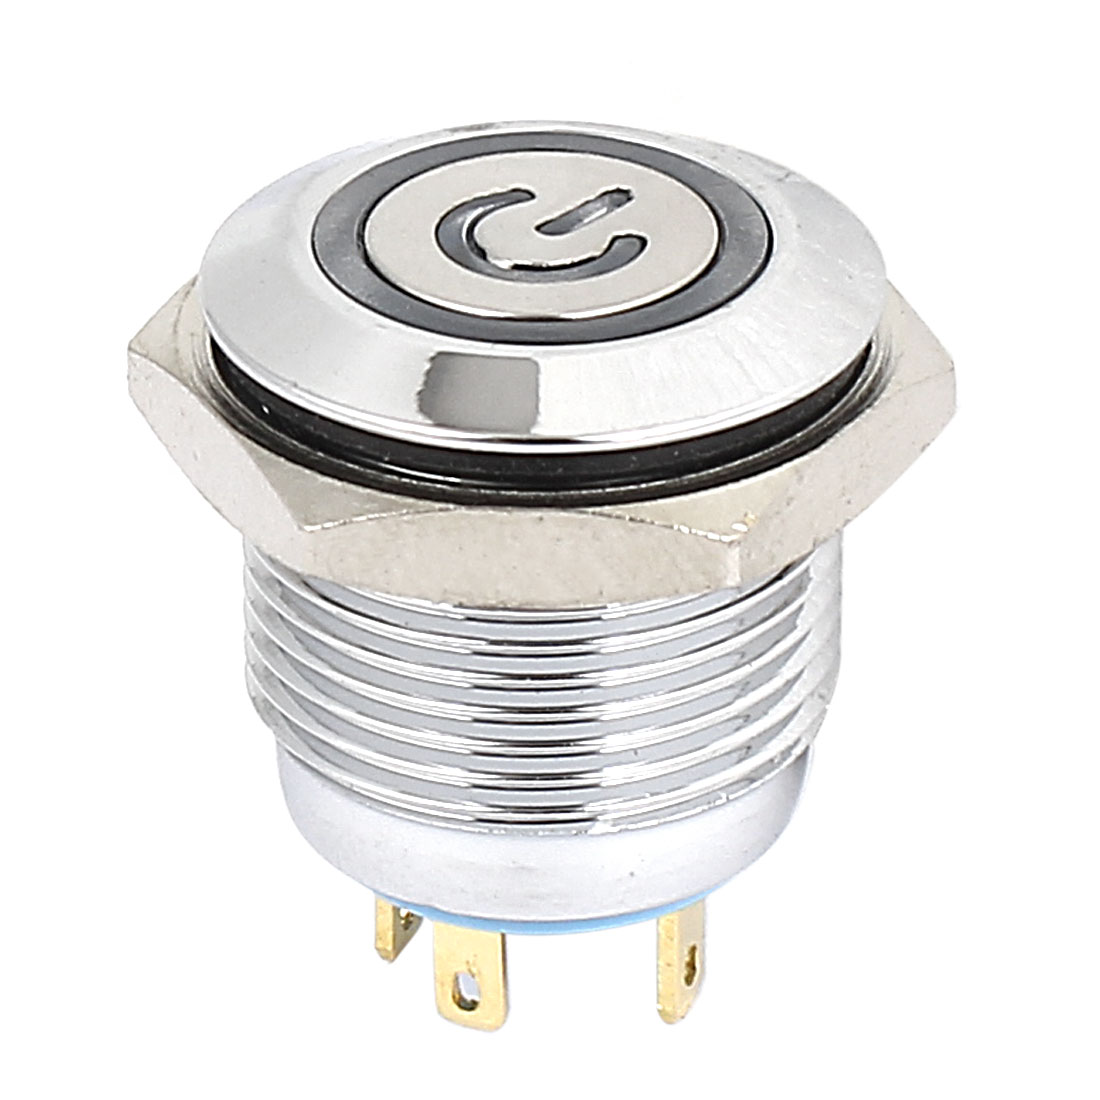 3V 16mm Dia Blue LED Lamp Chromium Plated Momentary Power Pushbutton Switch